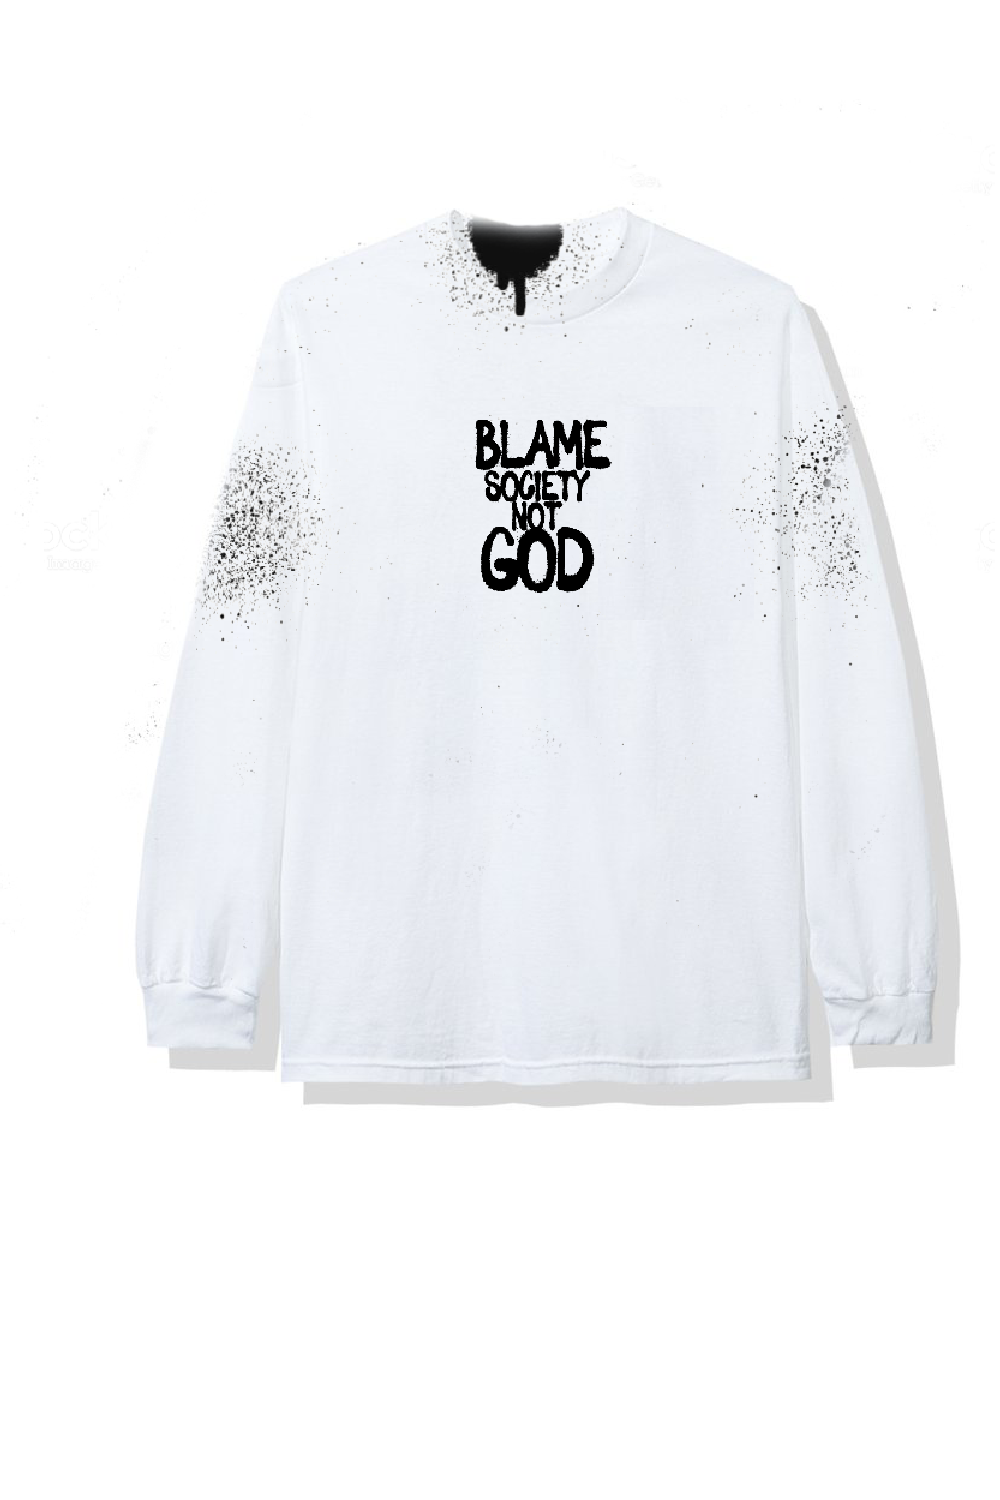 Image of TAG BLAME SOCIETY WHITET-SHIRT LONGSLEEVES